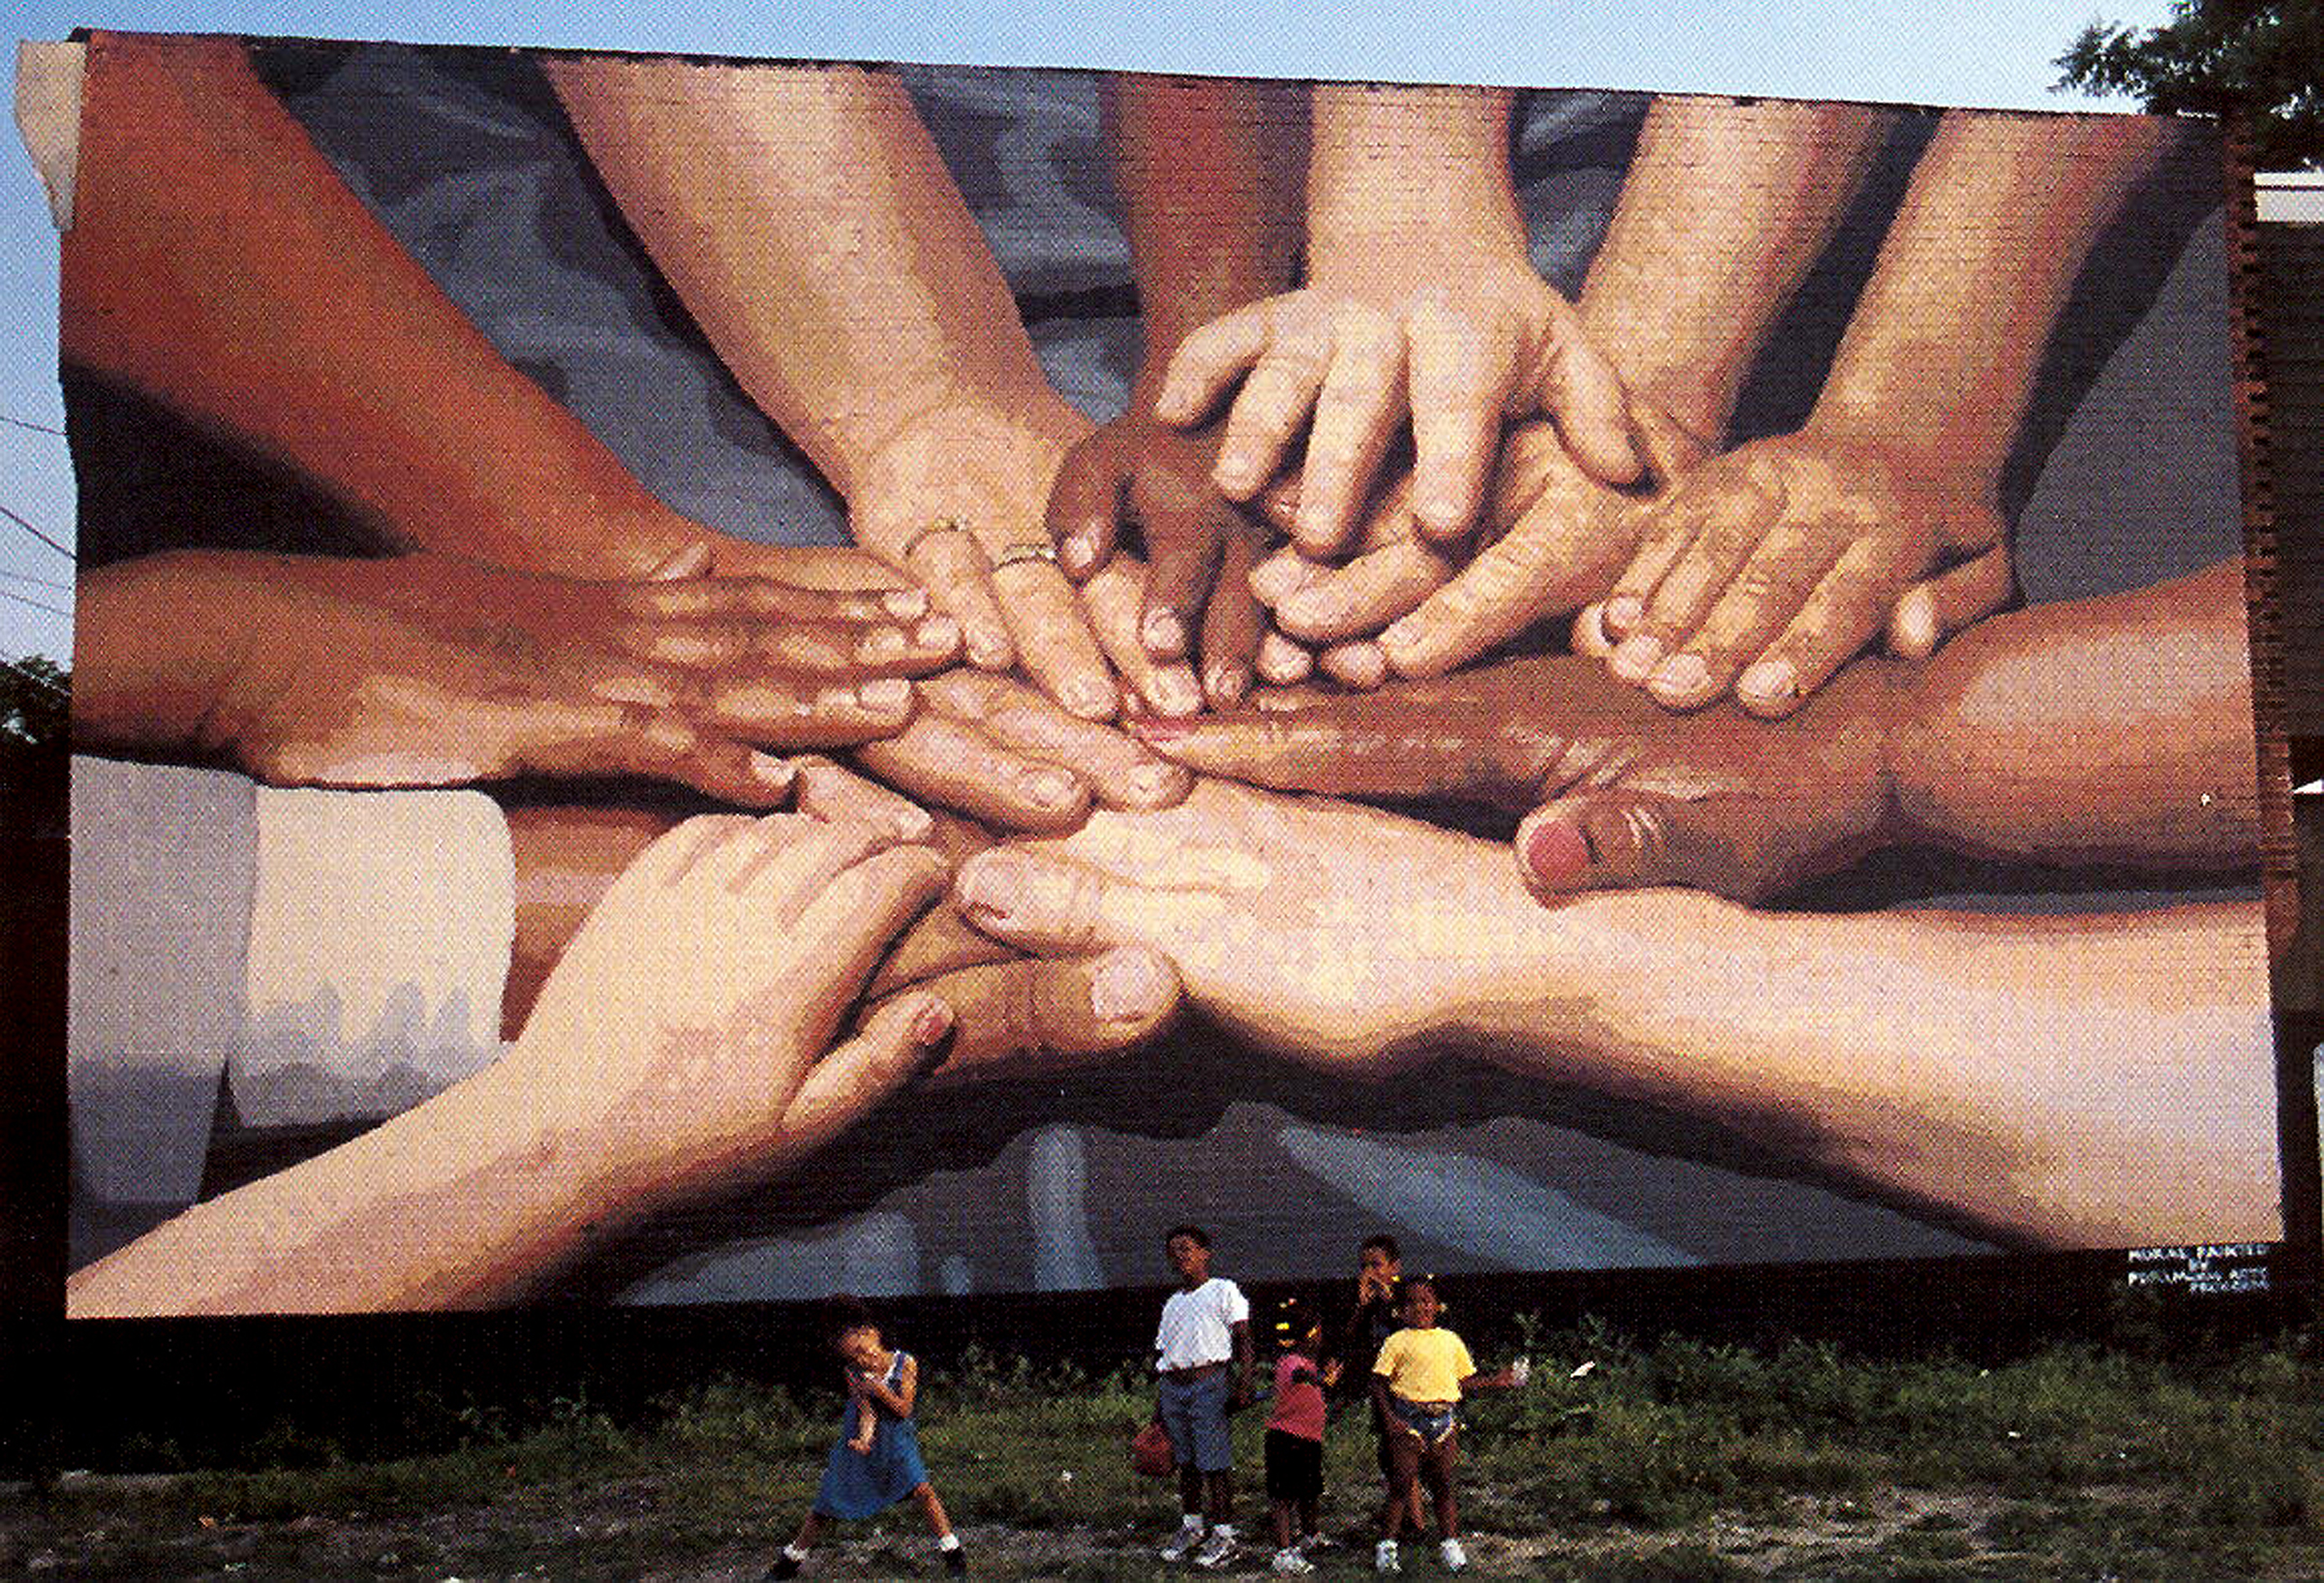 Peace Wall mural by Jane Golden and Peter Pagast, photo by PHLCVB